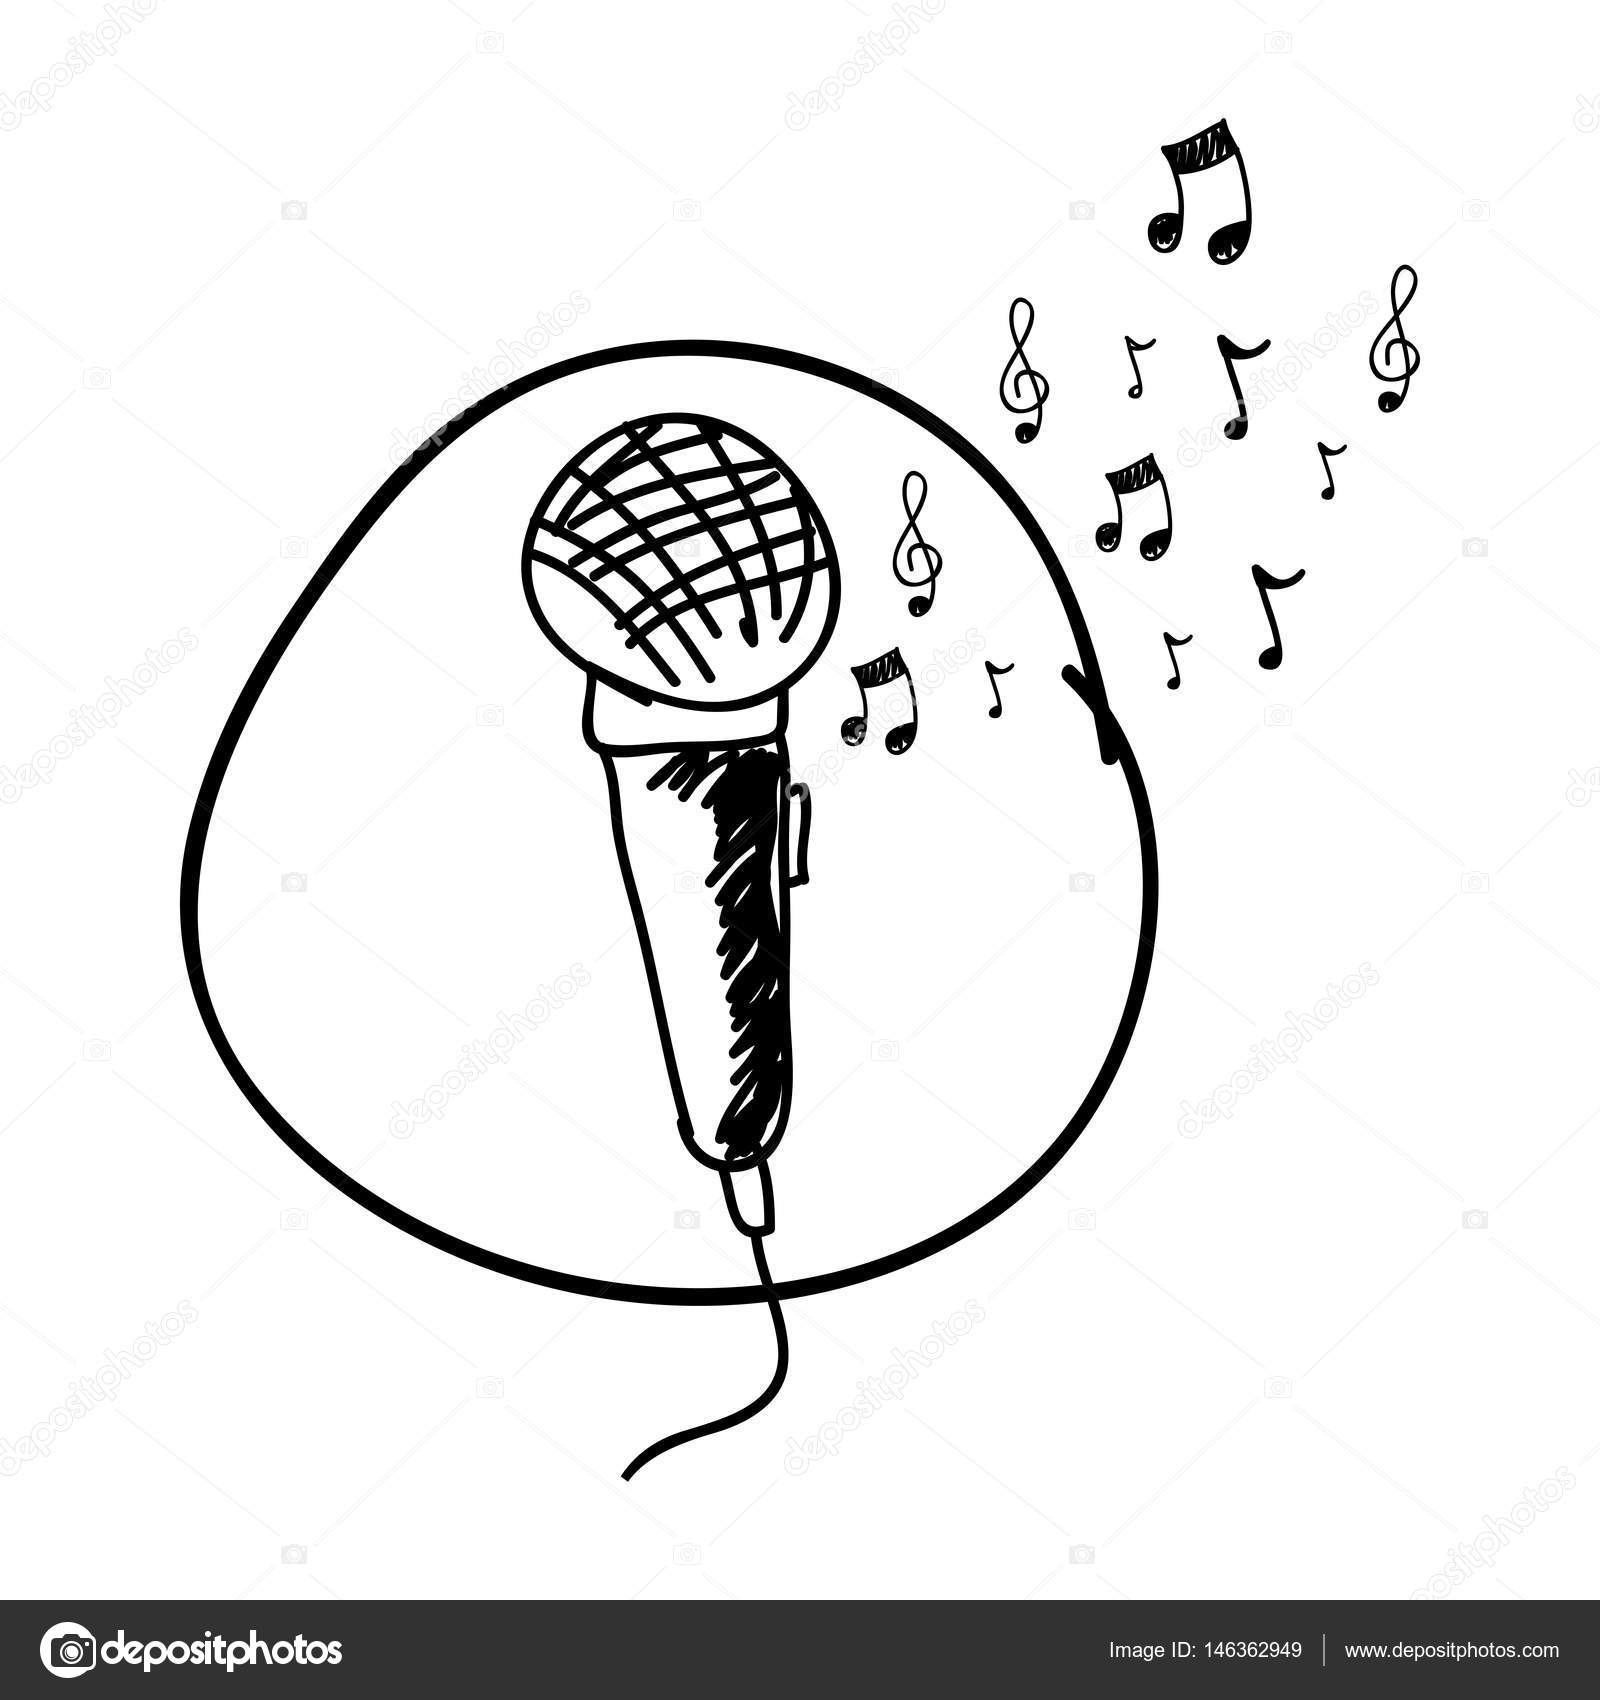 1600x1700 monochrome hand drawing of microphone in circle and musical notes